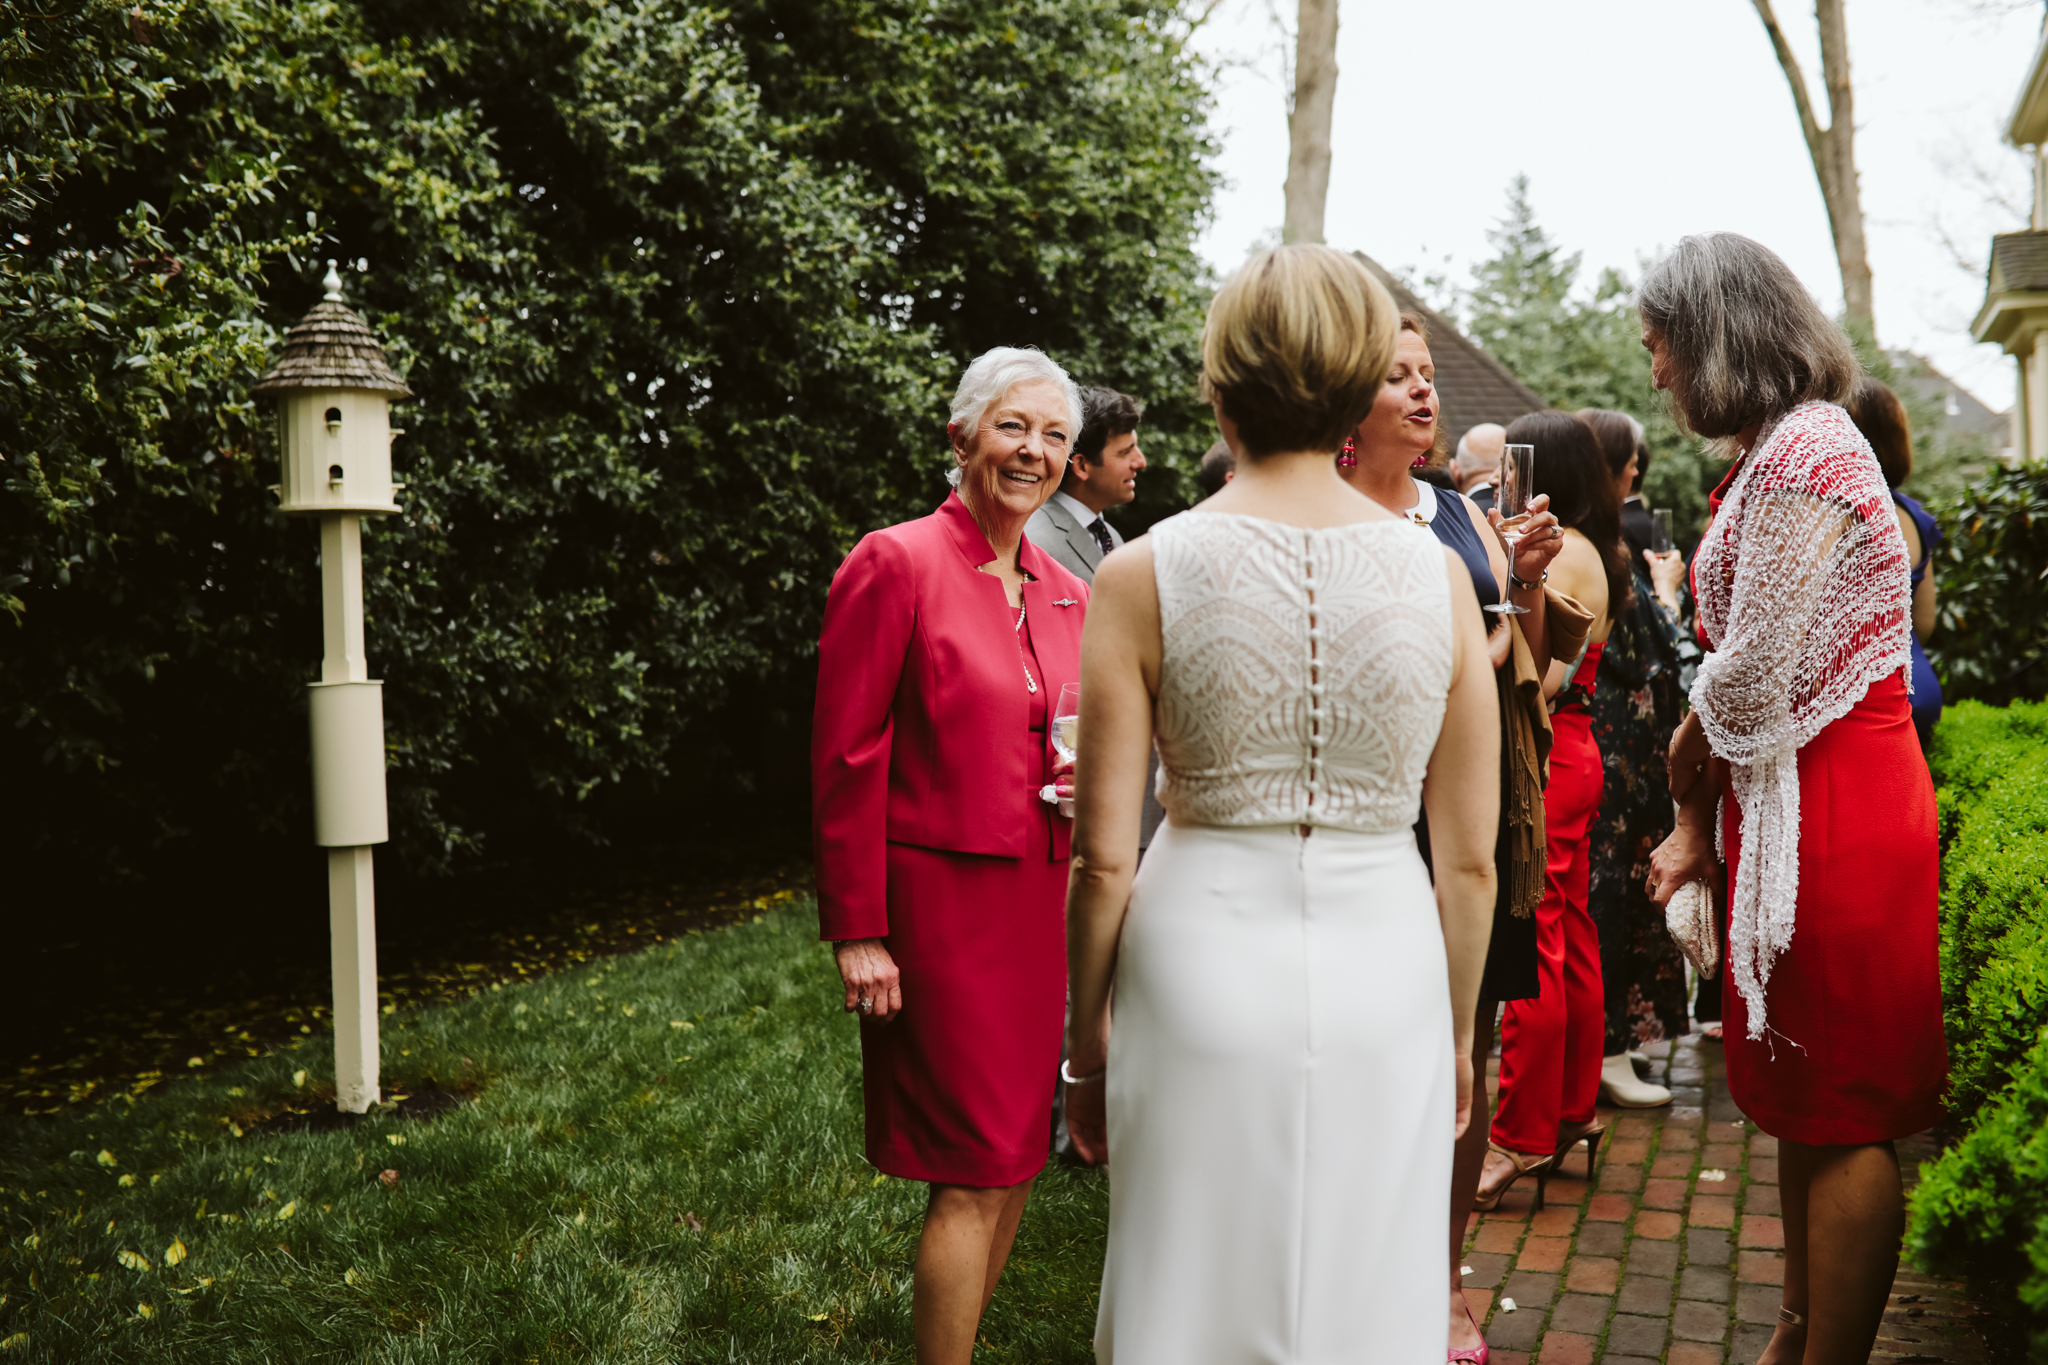 cook_wedding_richmond_virginia_rebecca_burt_photography-80.jpg